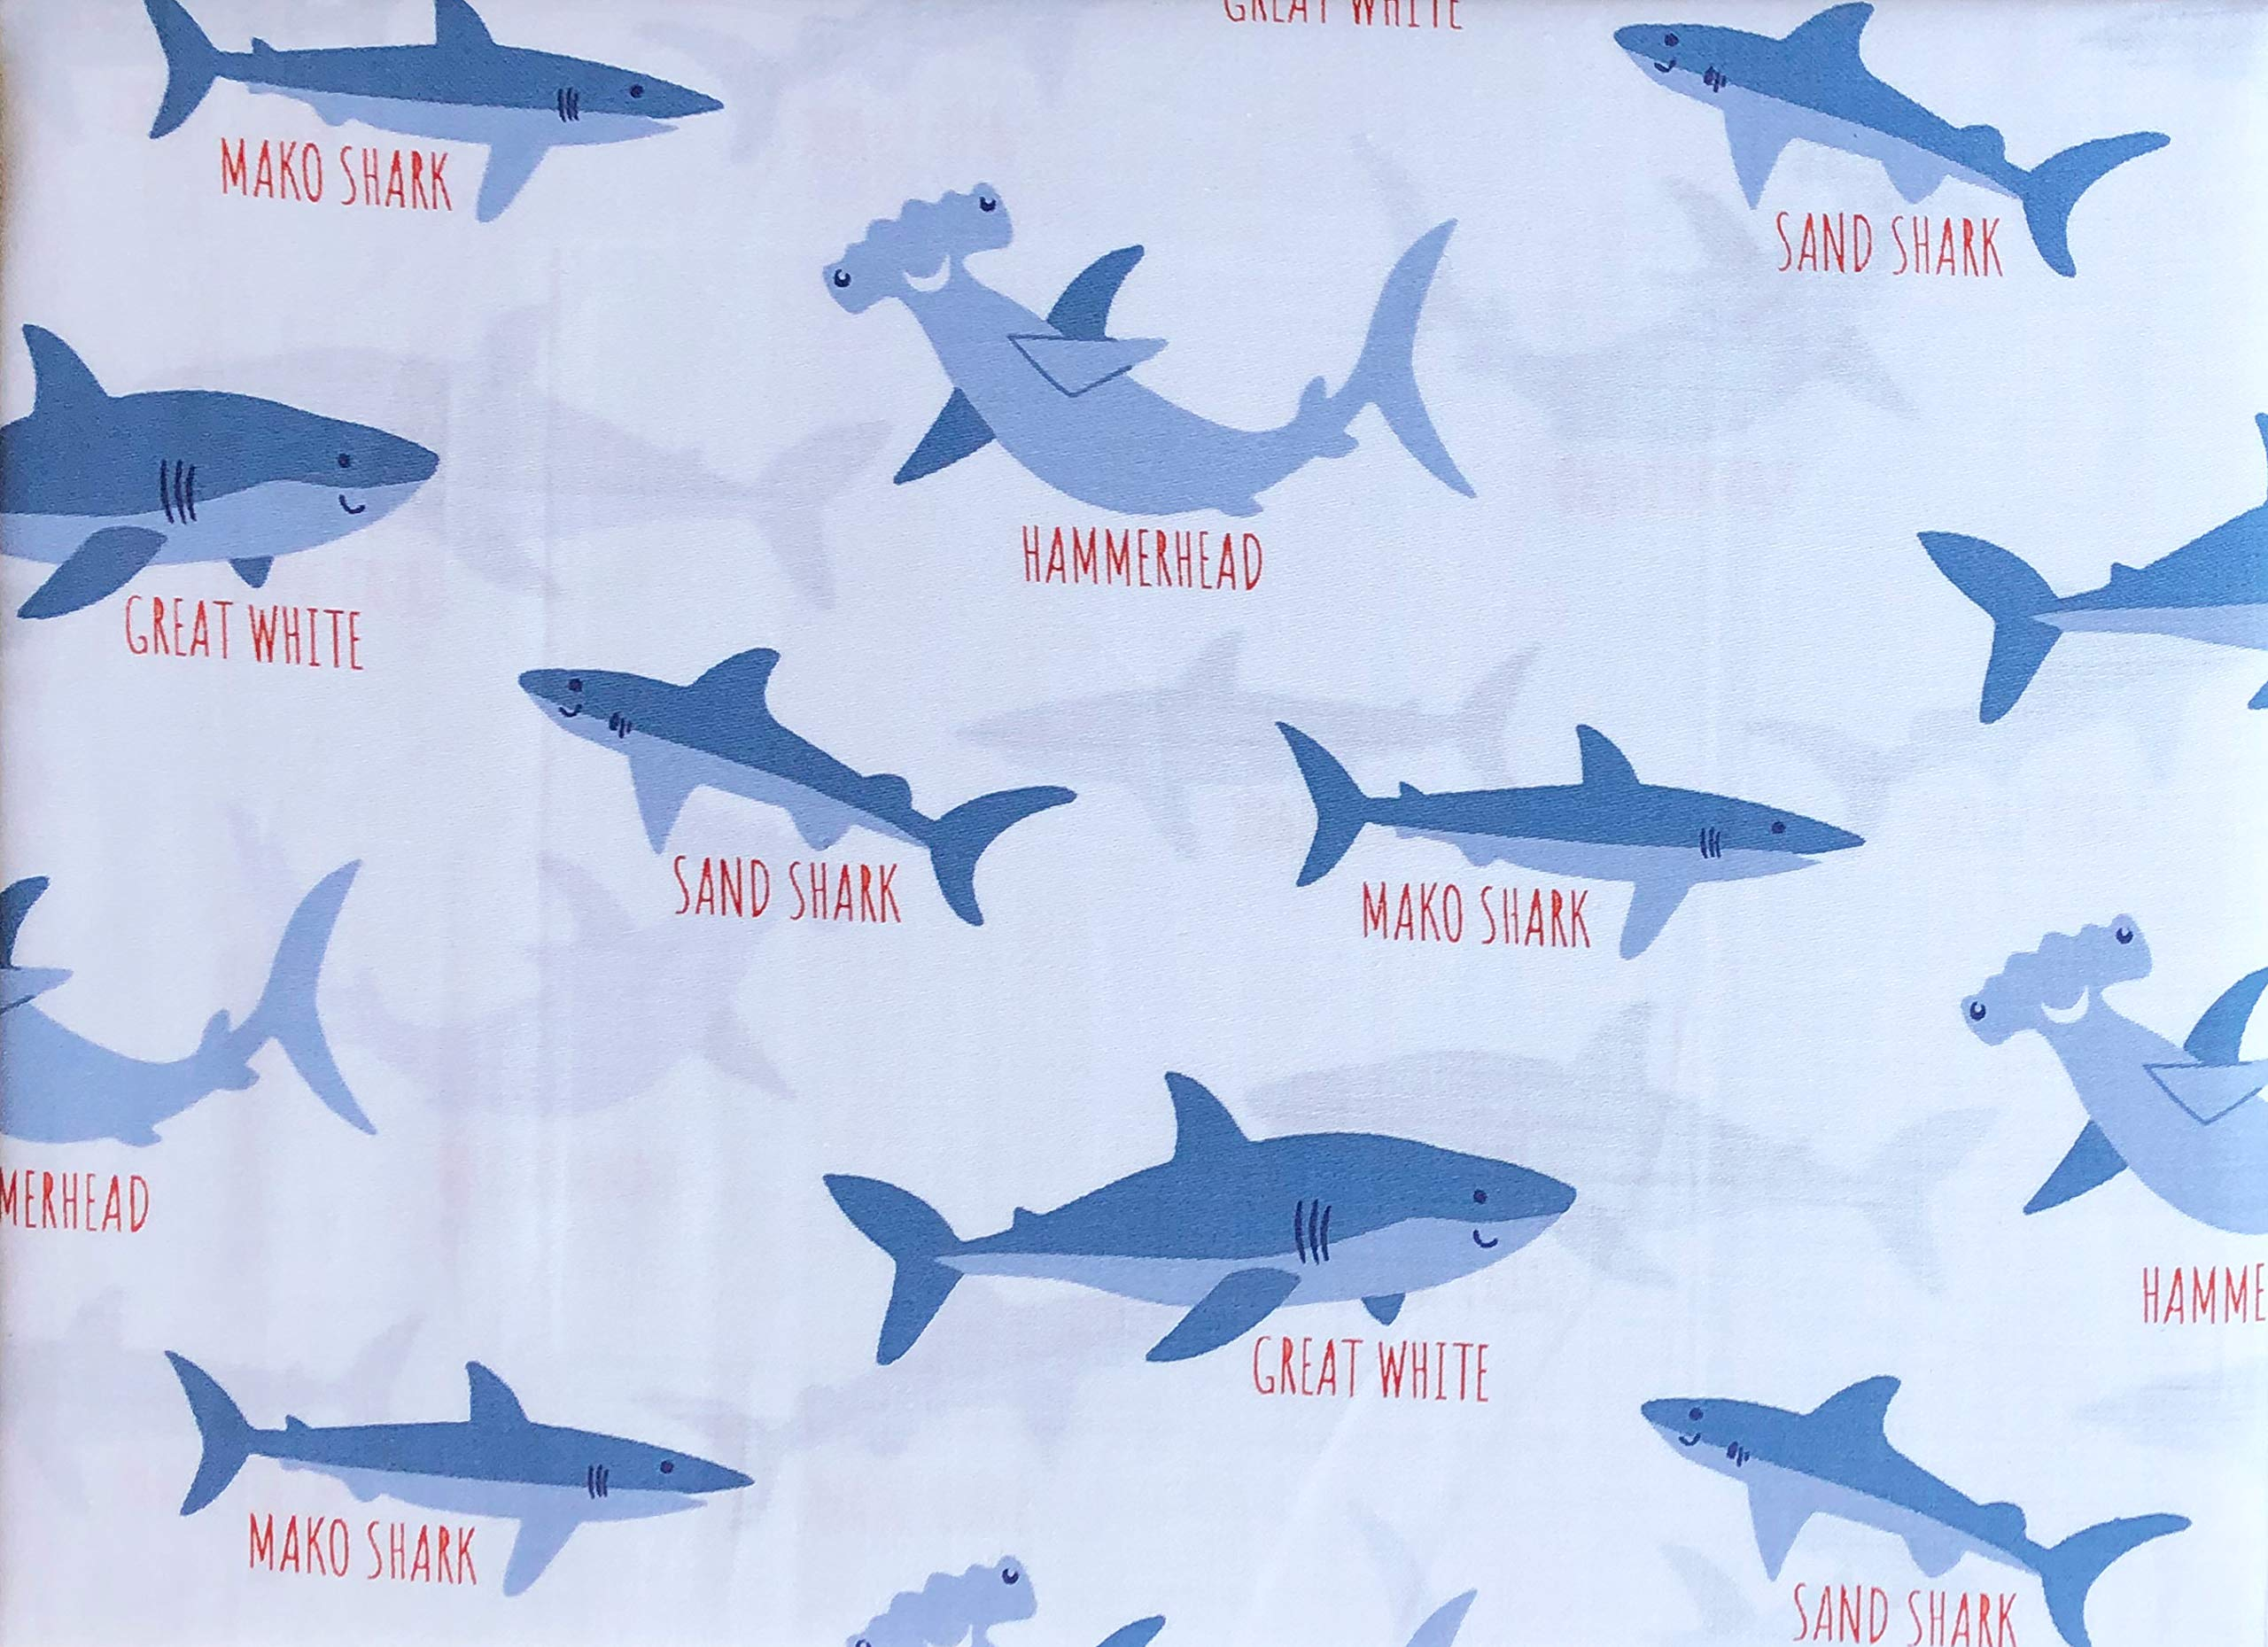 Authentic Kids 4pc Sheet Set Blue Sharks with Names Hammerhead Great White Sand Shark on White (Full) by Authentic Kids